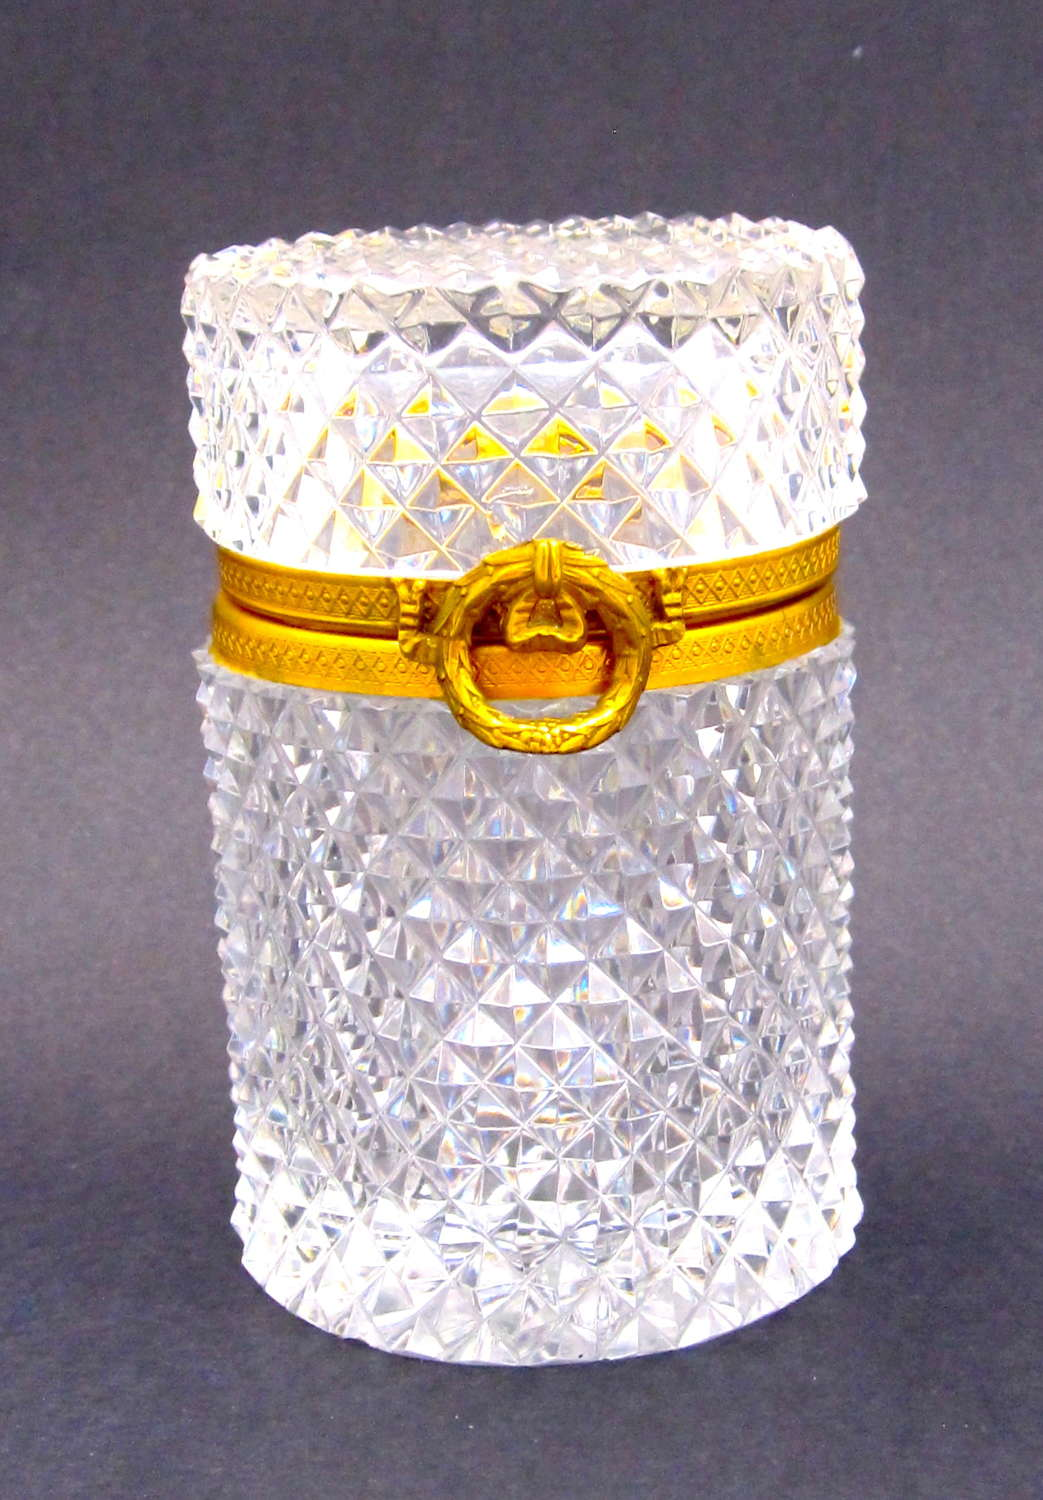 Antique Baccarat Diamond Cut Crystal Glass Casket Box with Bow Clasp